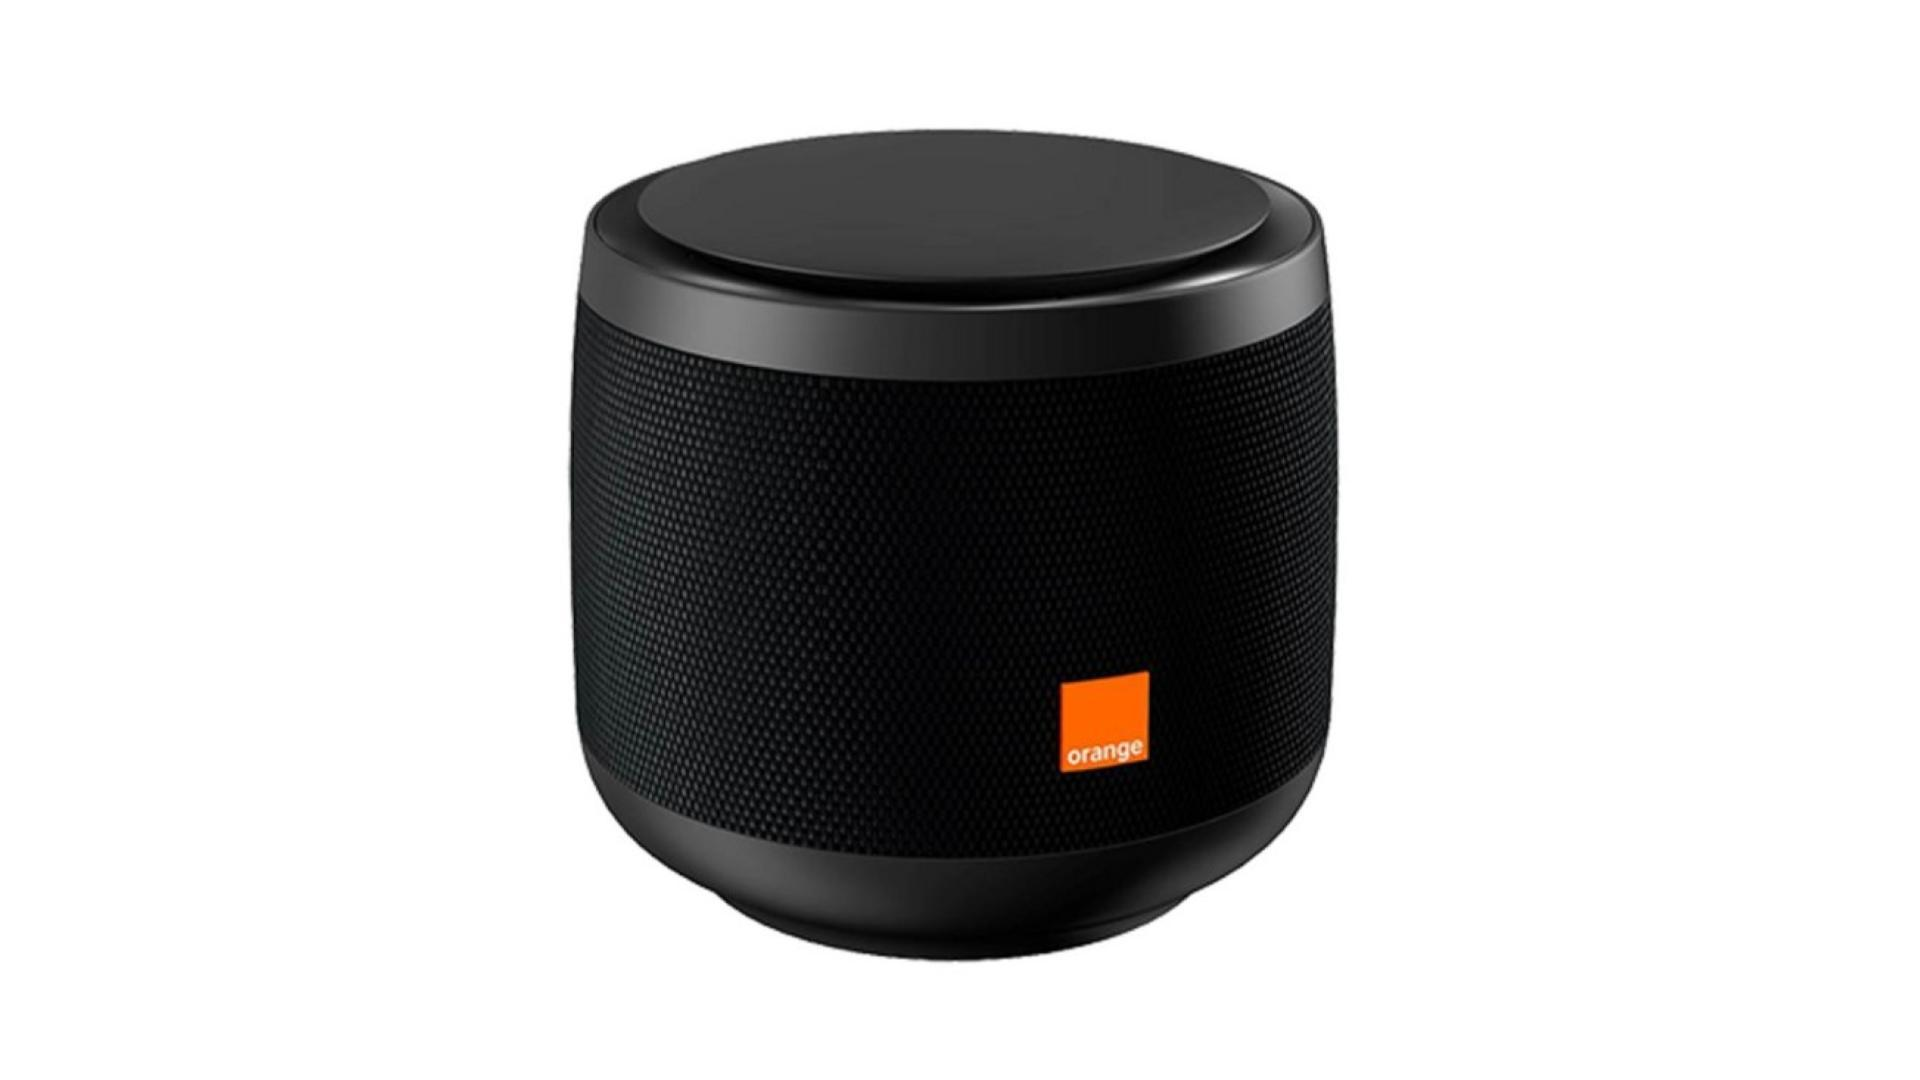 Orange commercialise enfin son enceinte Djingo à 149,99 euros